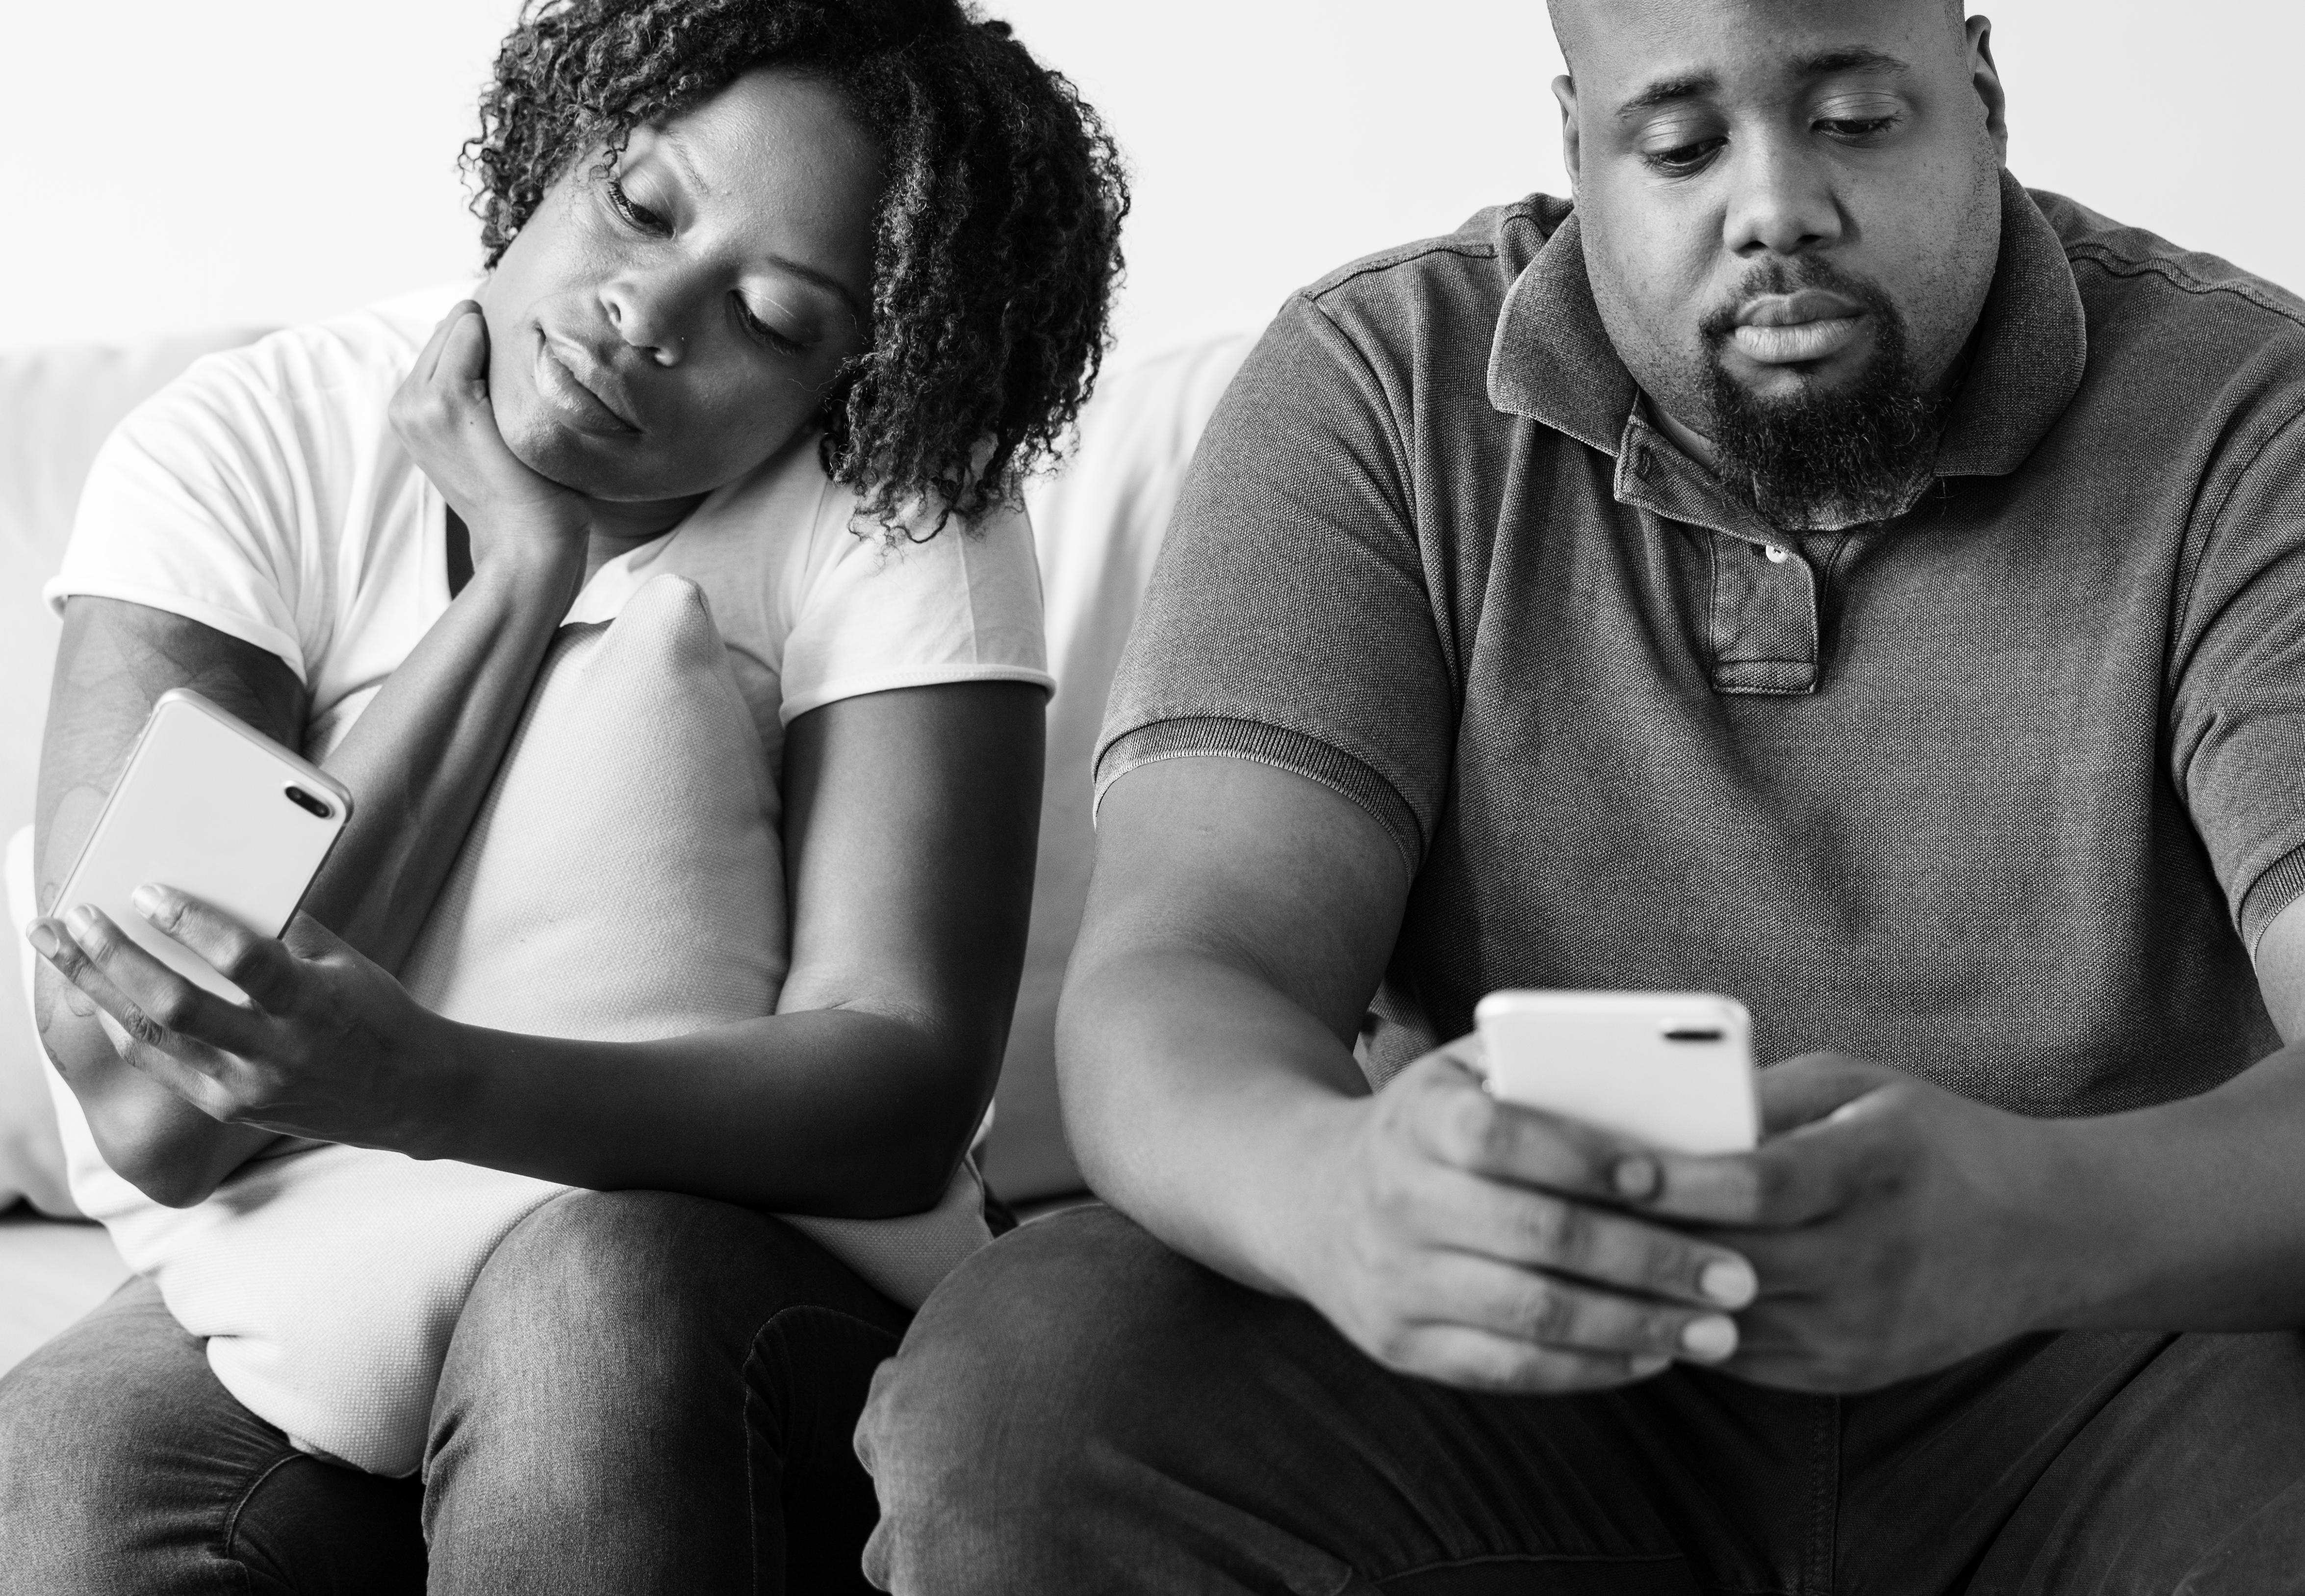 Are you and your relationship in a rut? Learn easy ways to make it fresh again